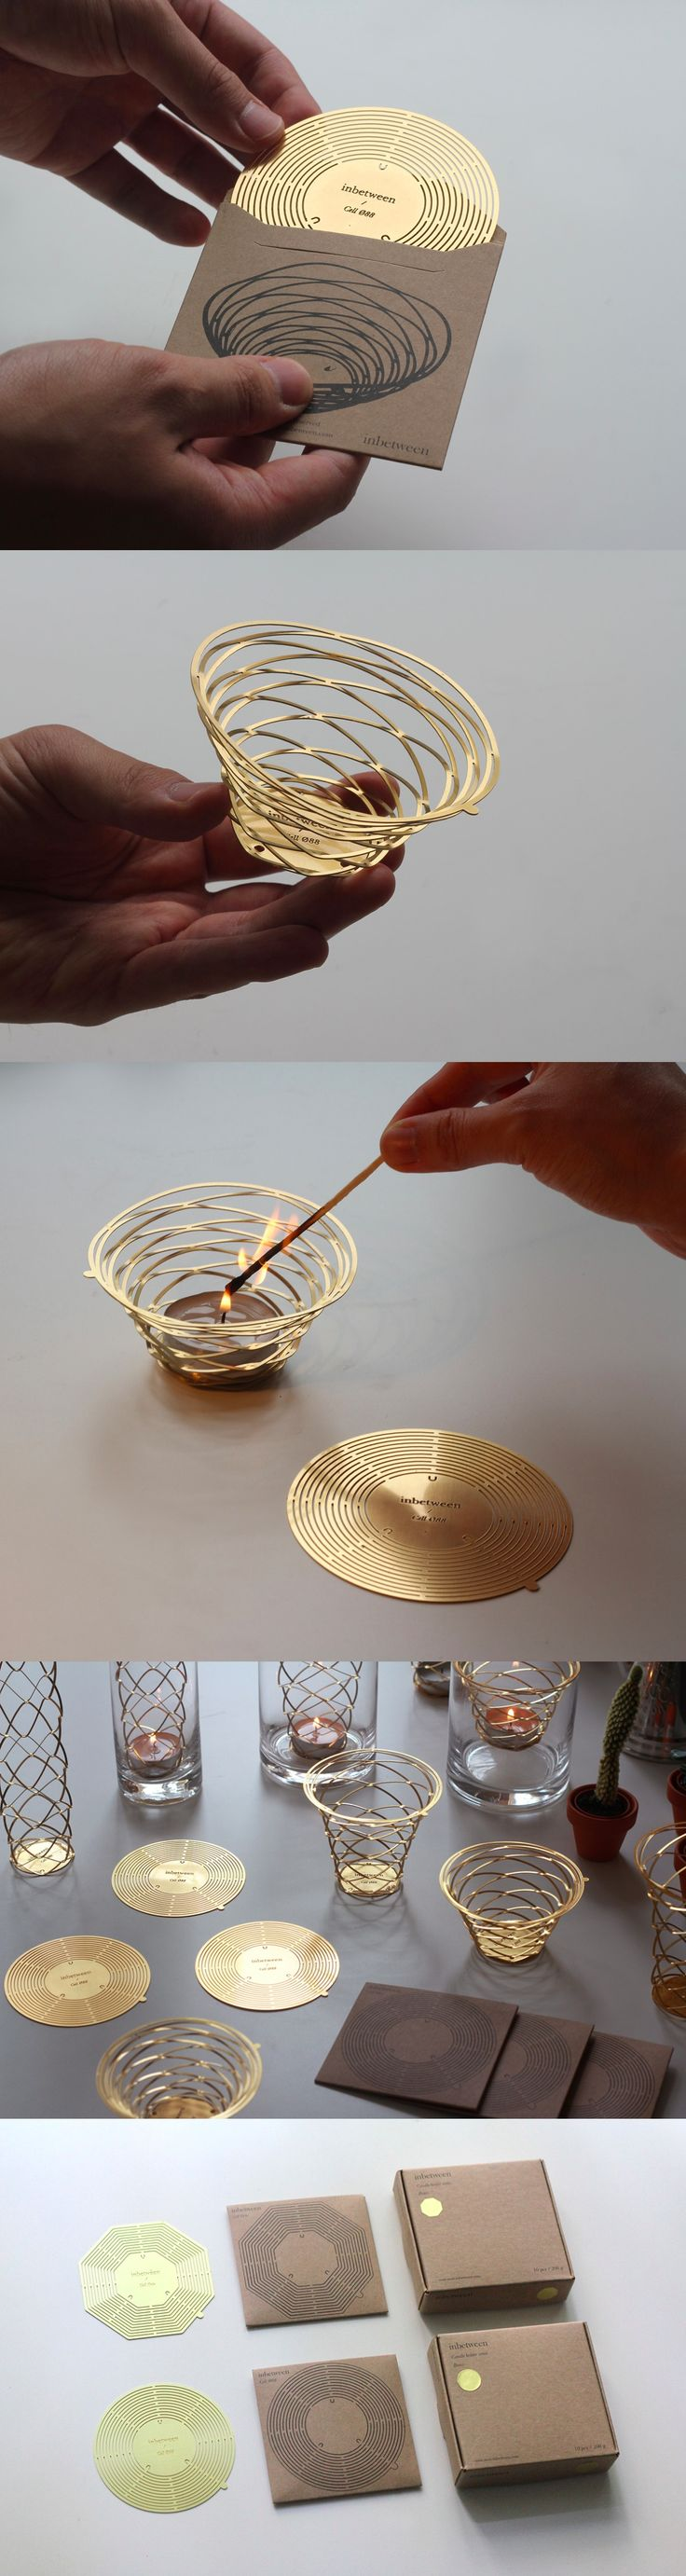 Brass pop up candle holder by studio inbetween